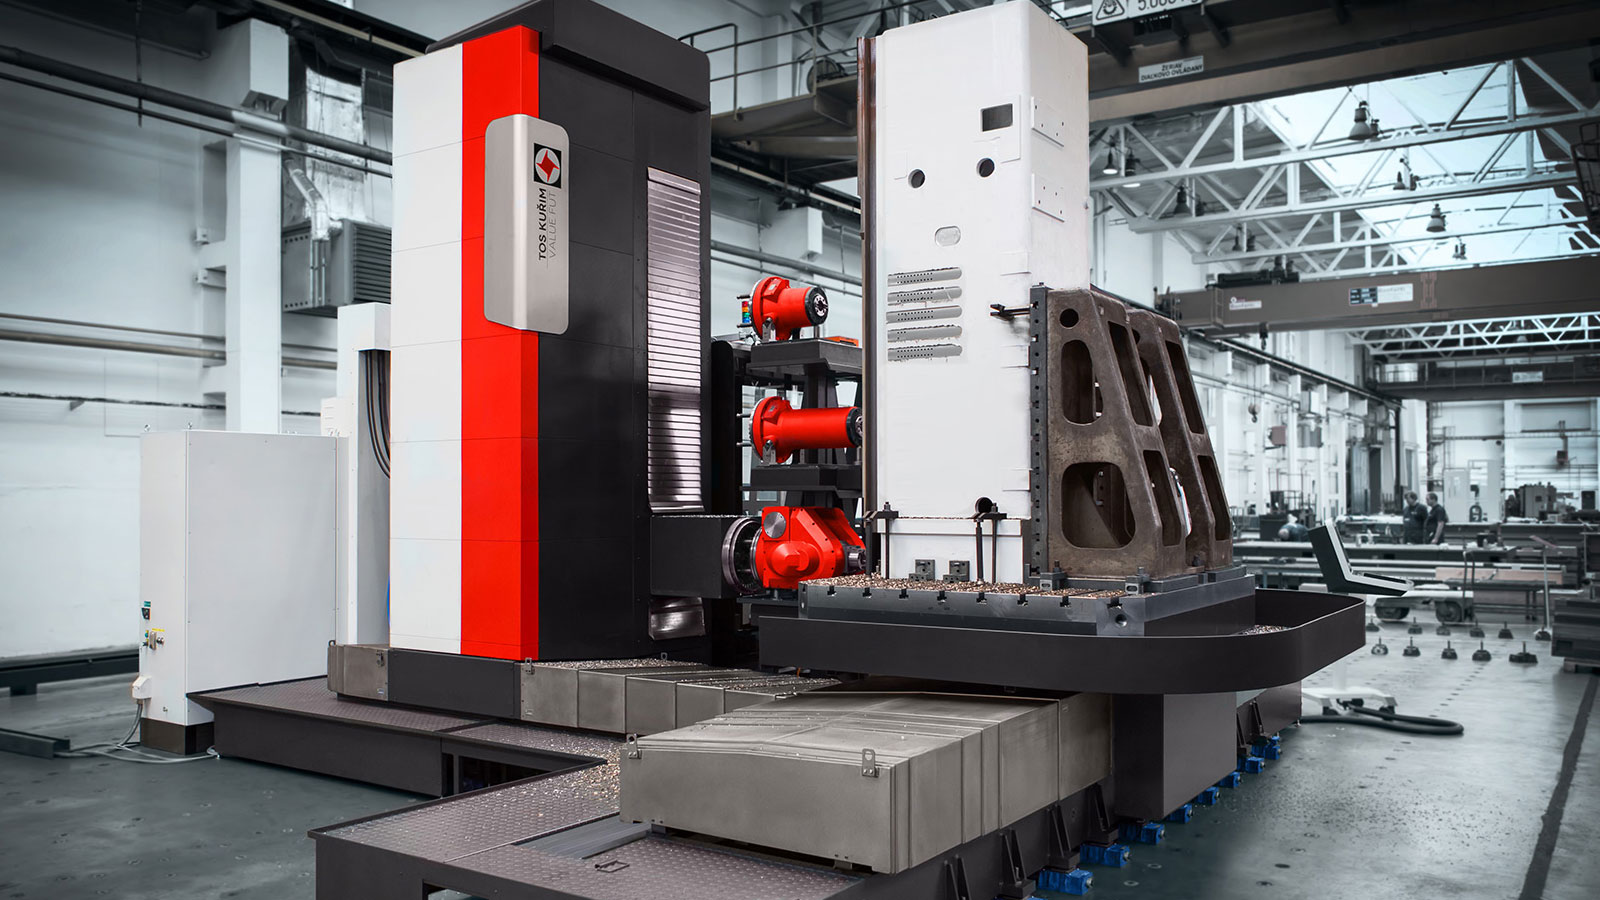 Tos-Kurim Heavy Duty Machining Centres